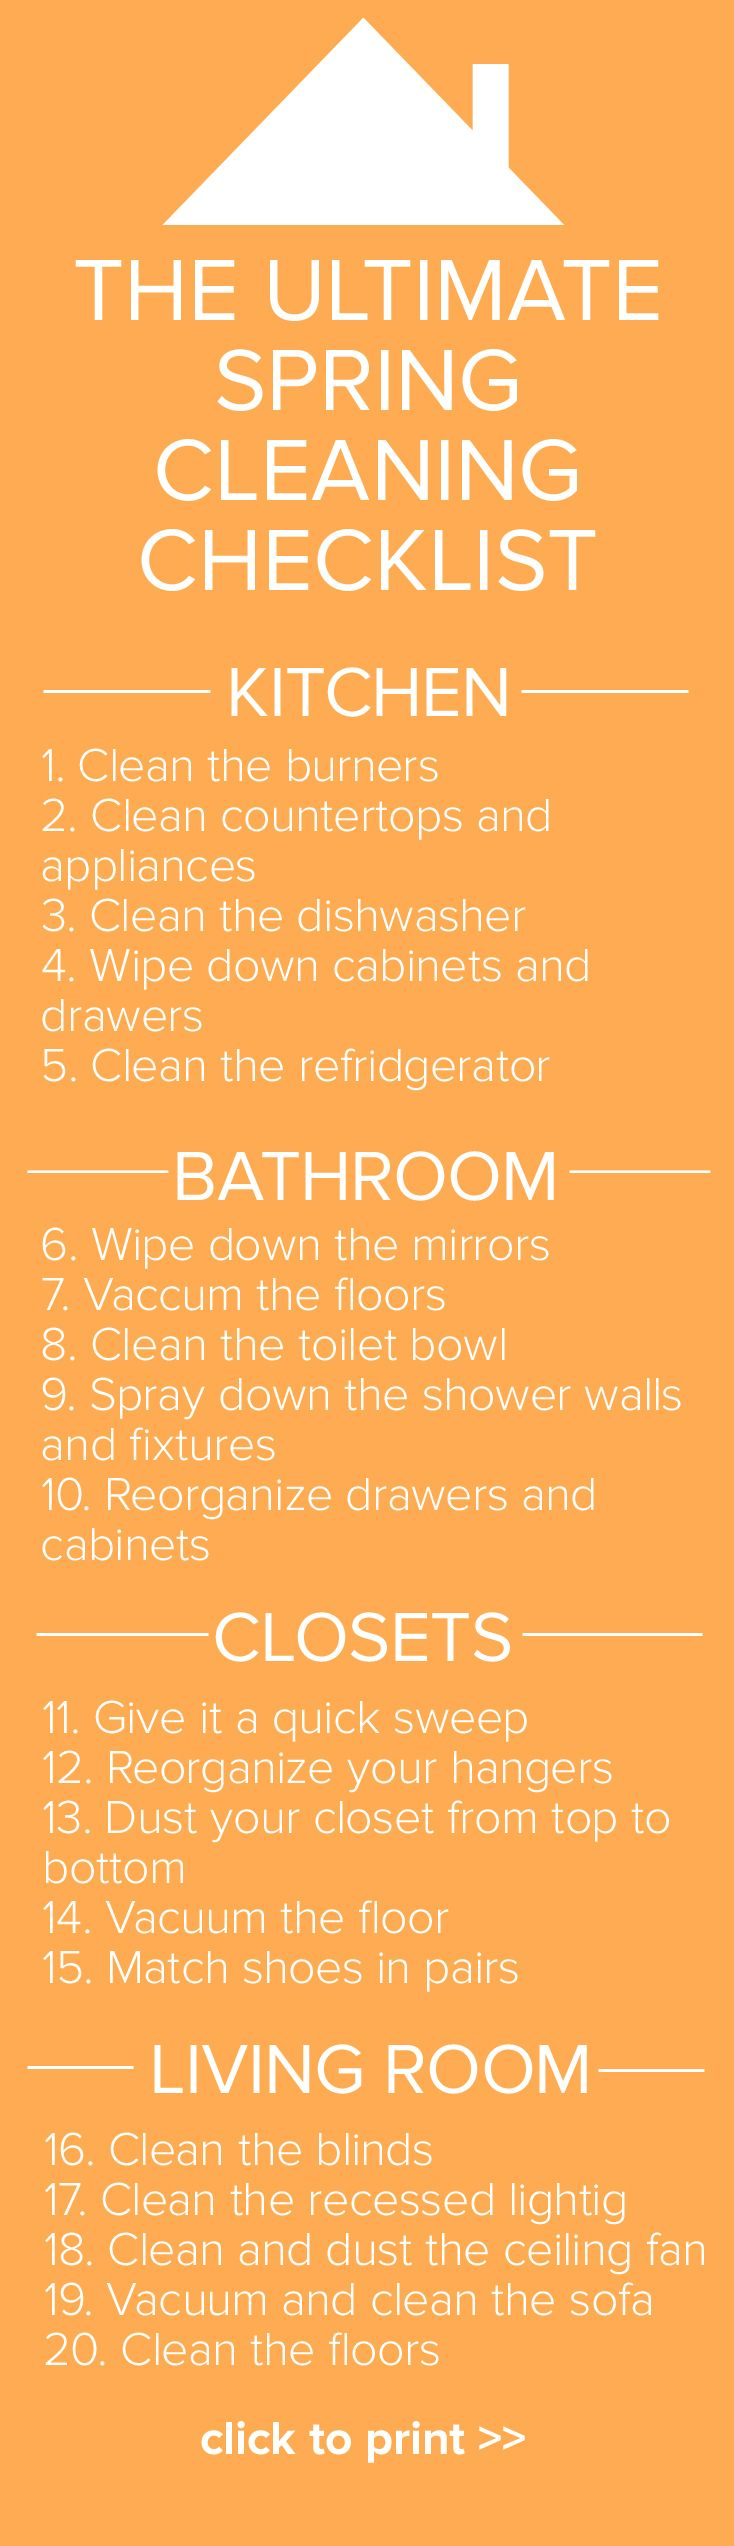 Spring cleaning kitchen cabinets - The Ultimate Spring Cleaning Checklist